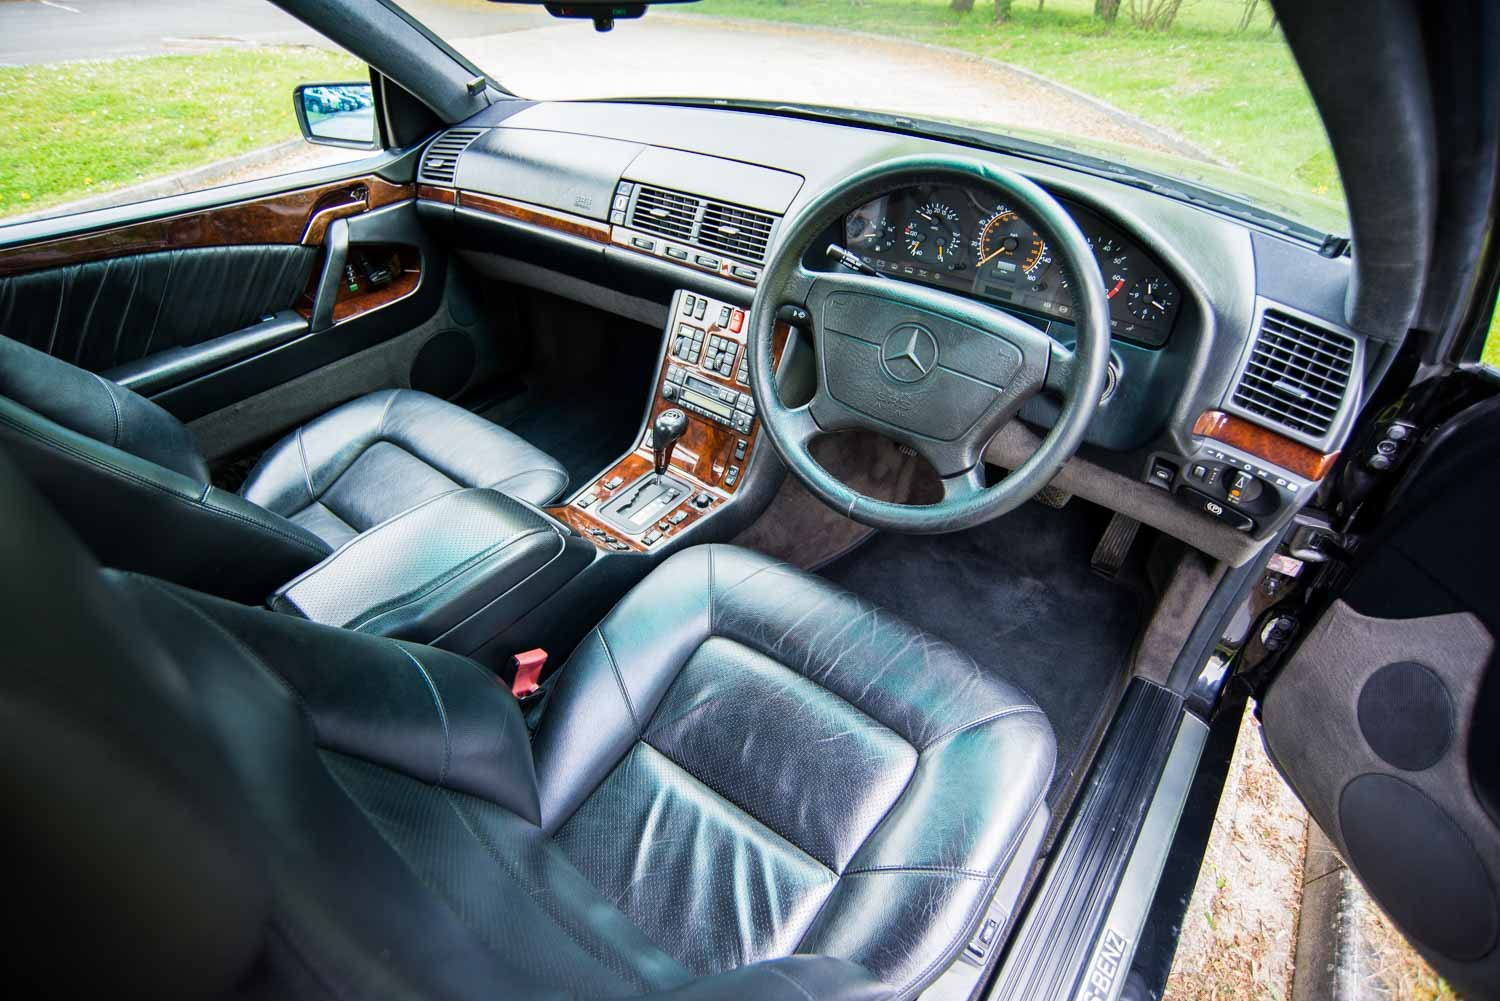 1995 Mercedes-Benz W140 S500 Coupe - 95K - 3 Owners - Lorinser SOLD (picture 4 of 6)